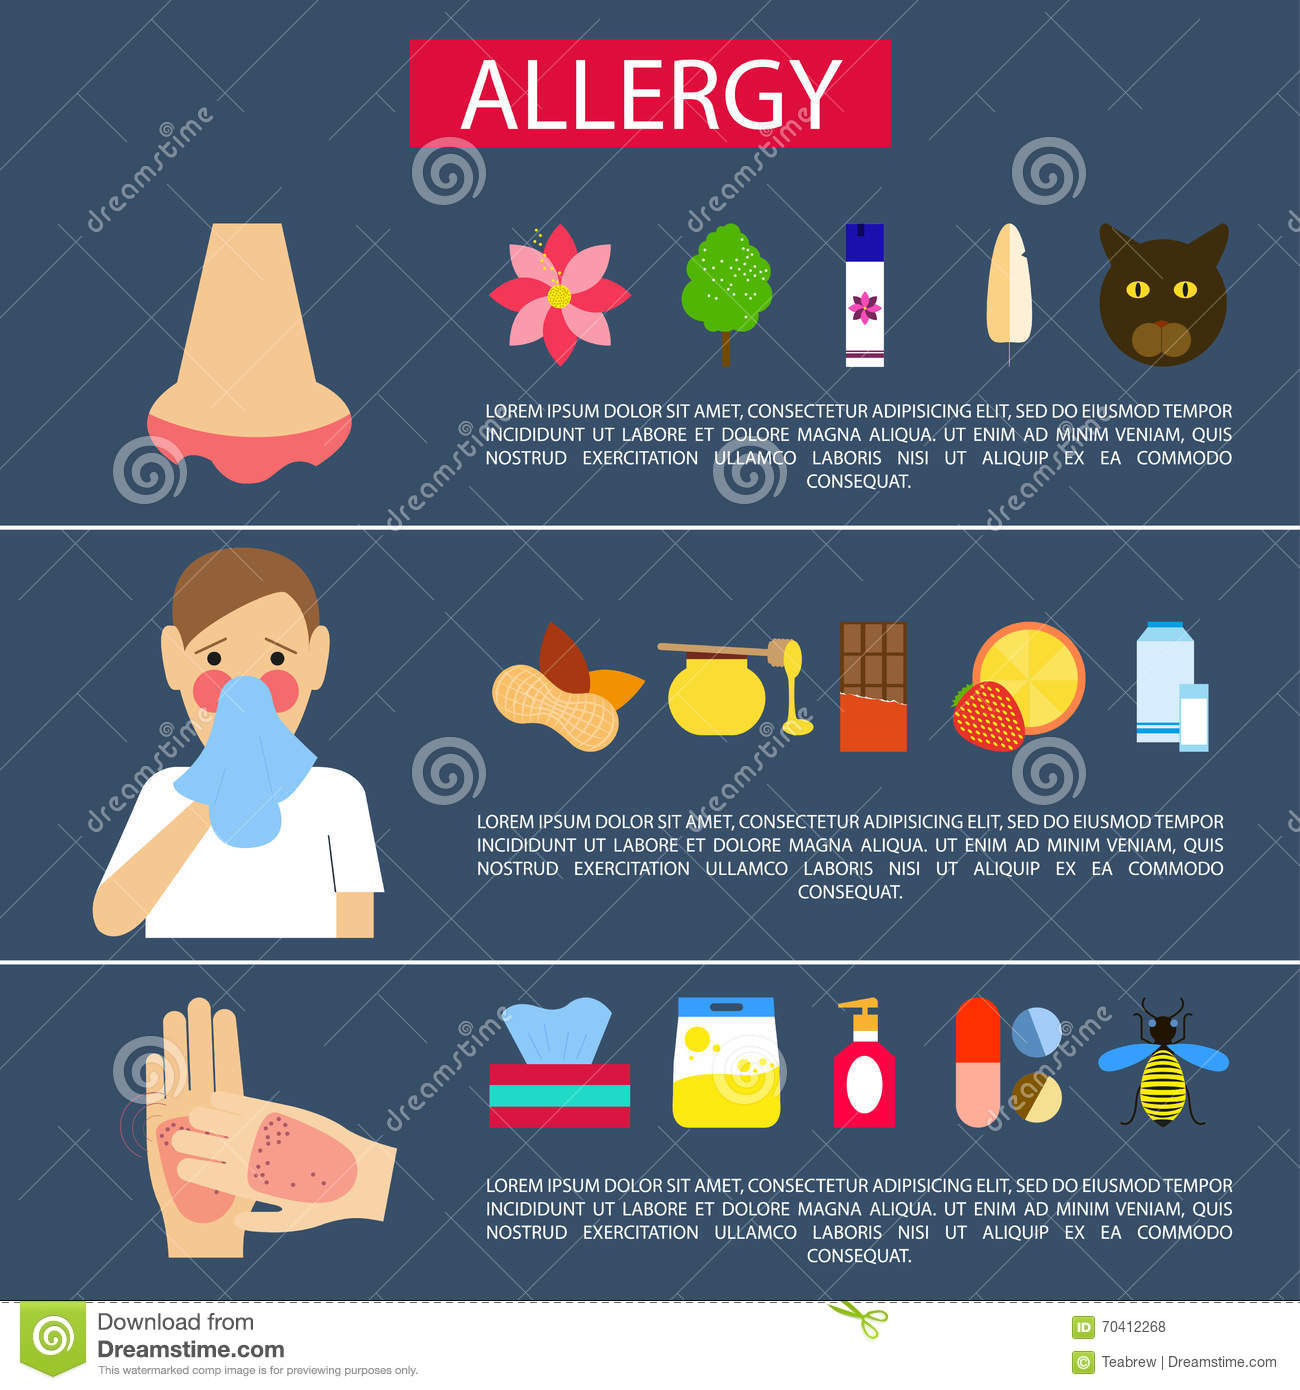 Allergy symptoms. Vector illustration. Flat design